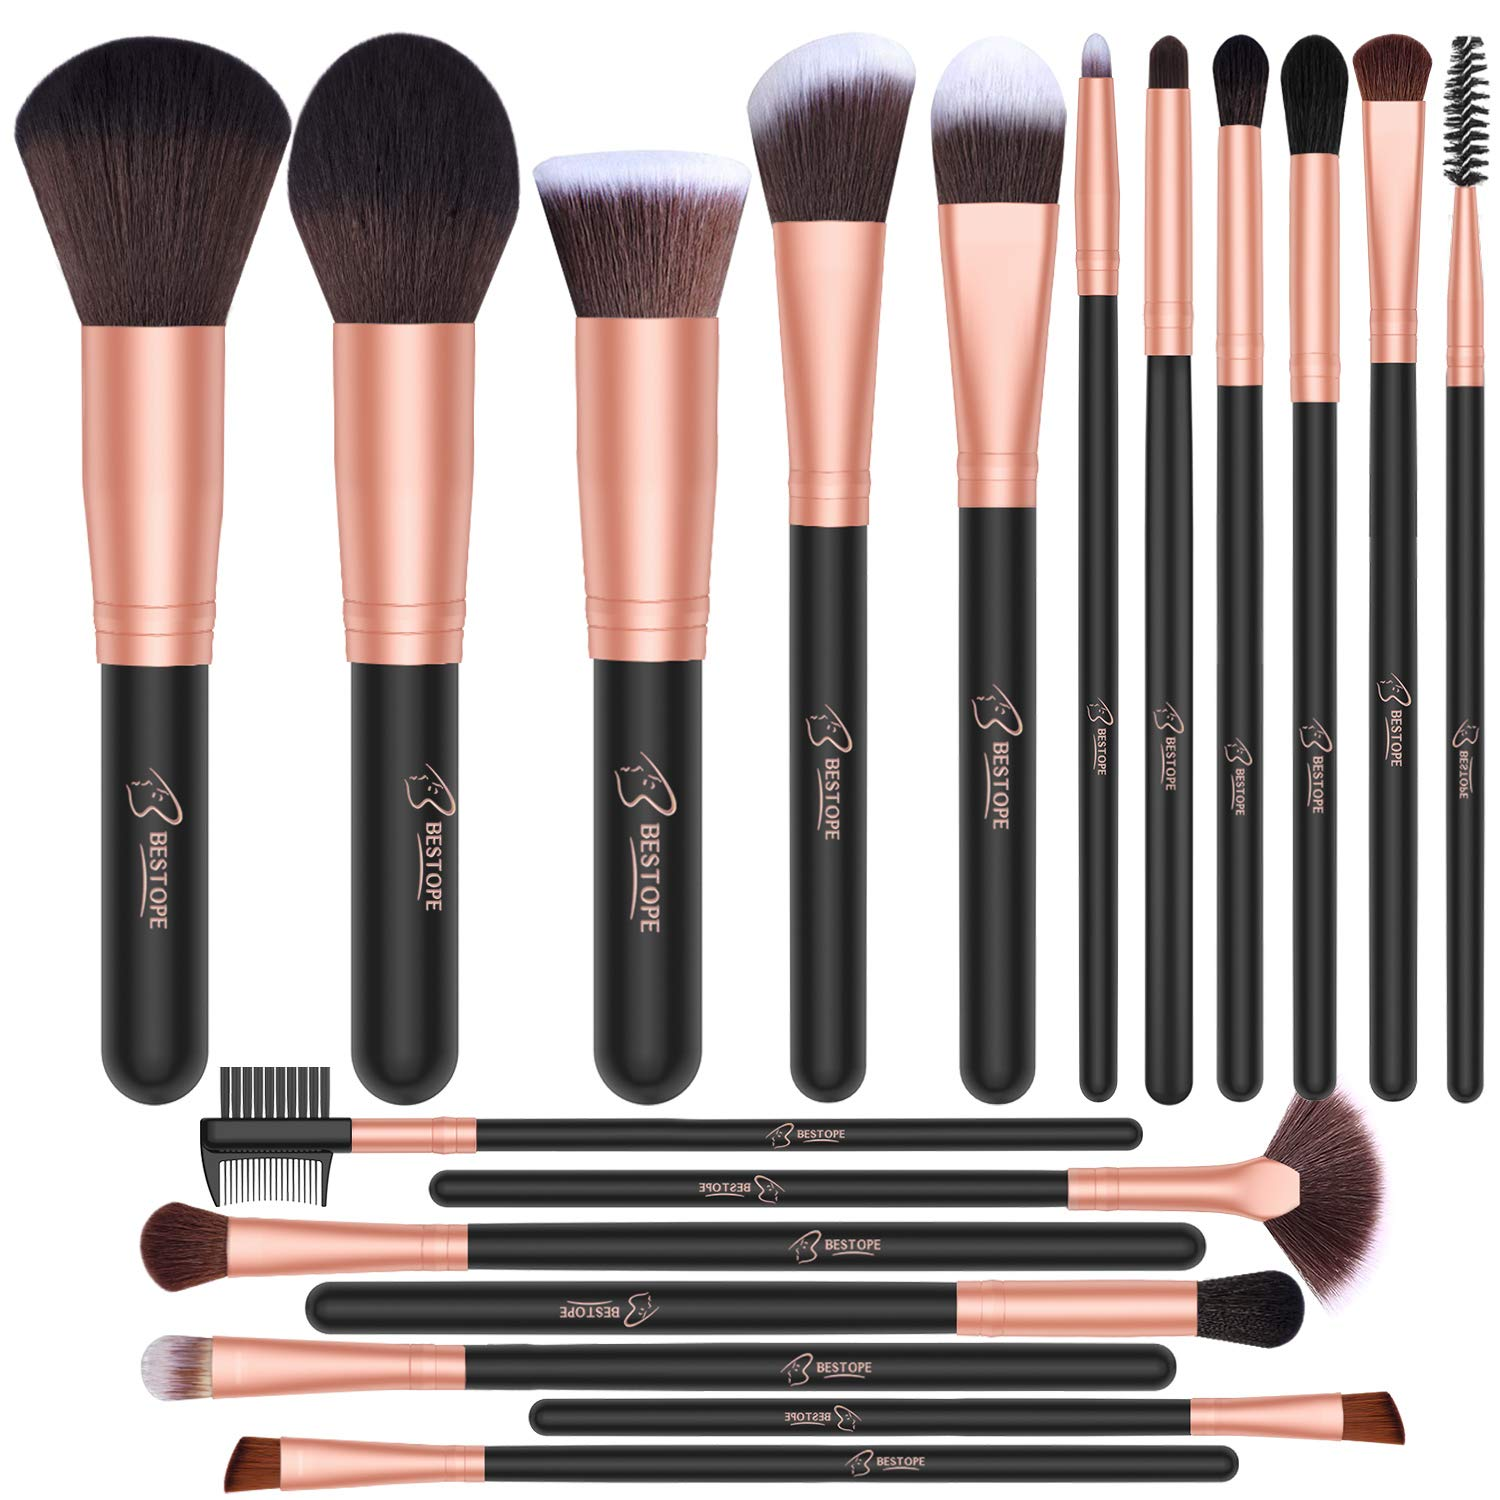 8. BESTOPE Makeup Brush Set